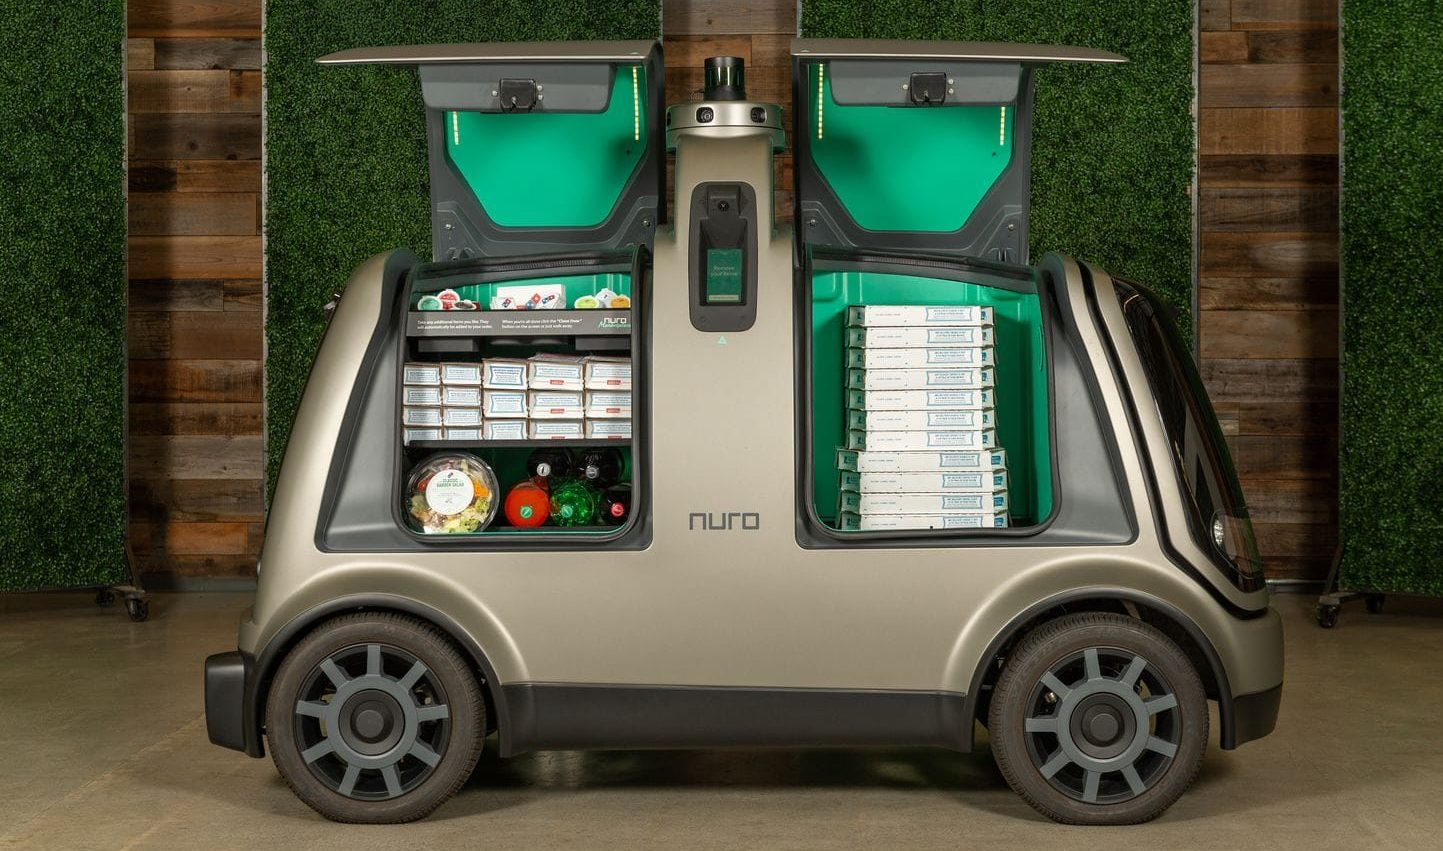 this photo shows a driverless vehicle being tested by Domino for pizza delivery